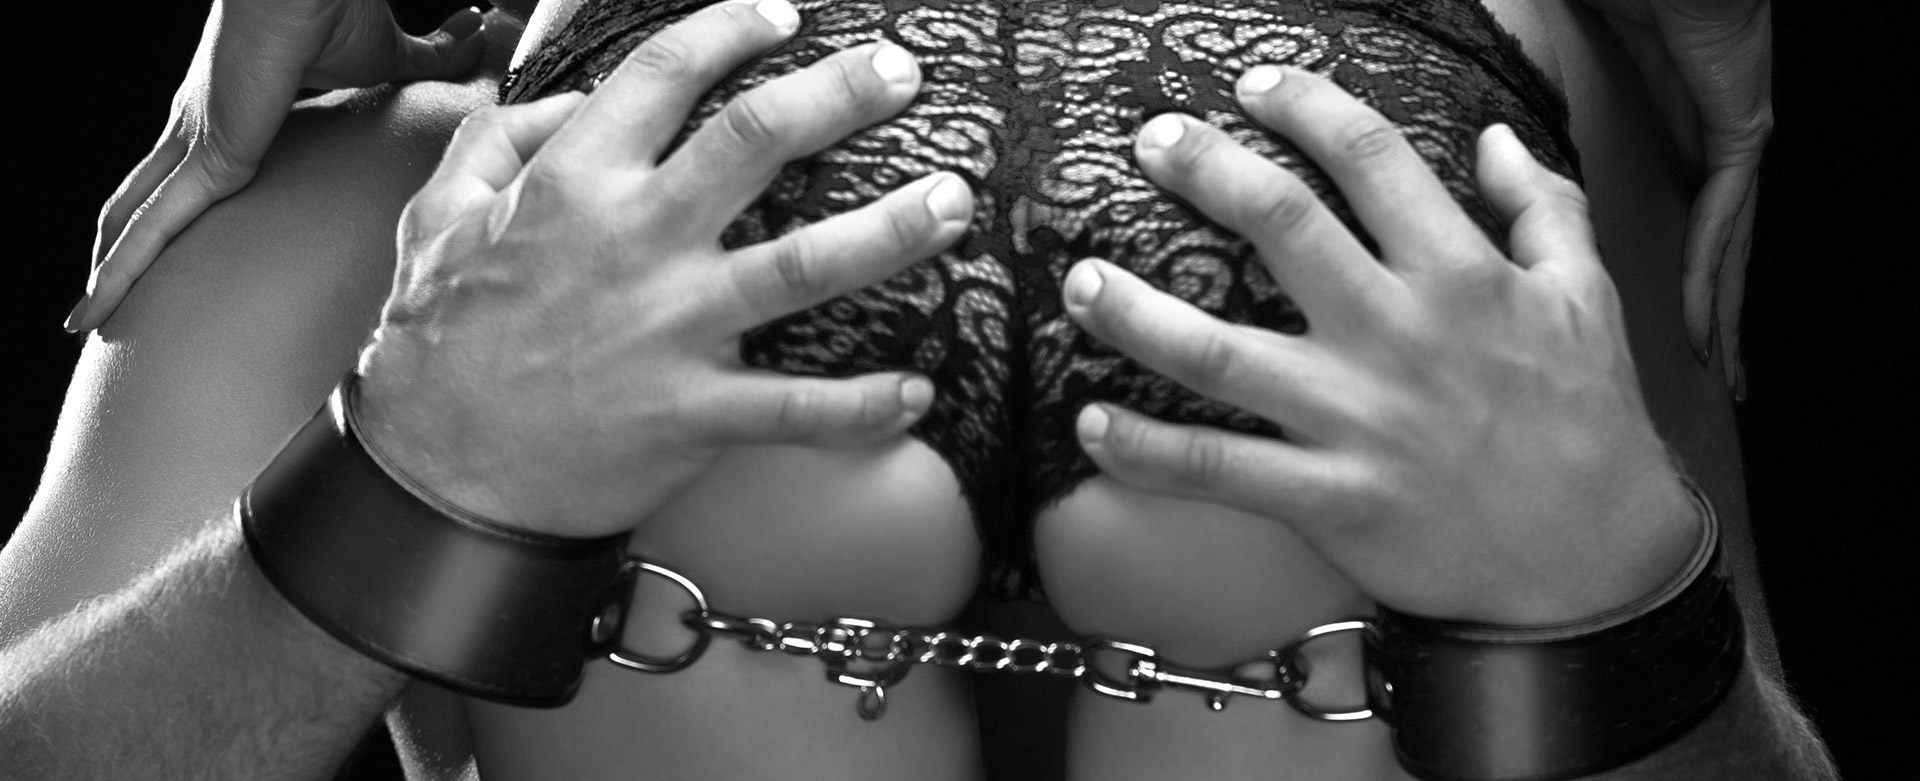 MAn in handcuffs gripping a woman's bottom